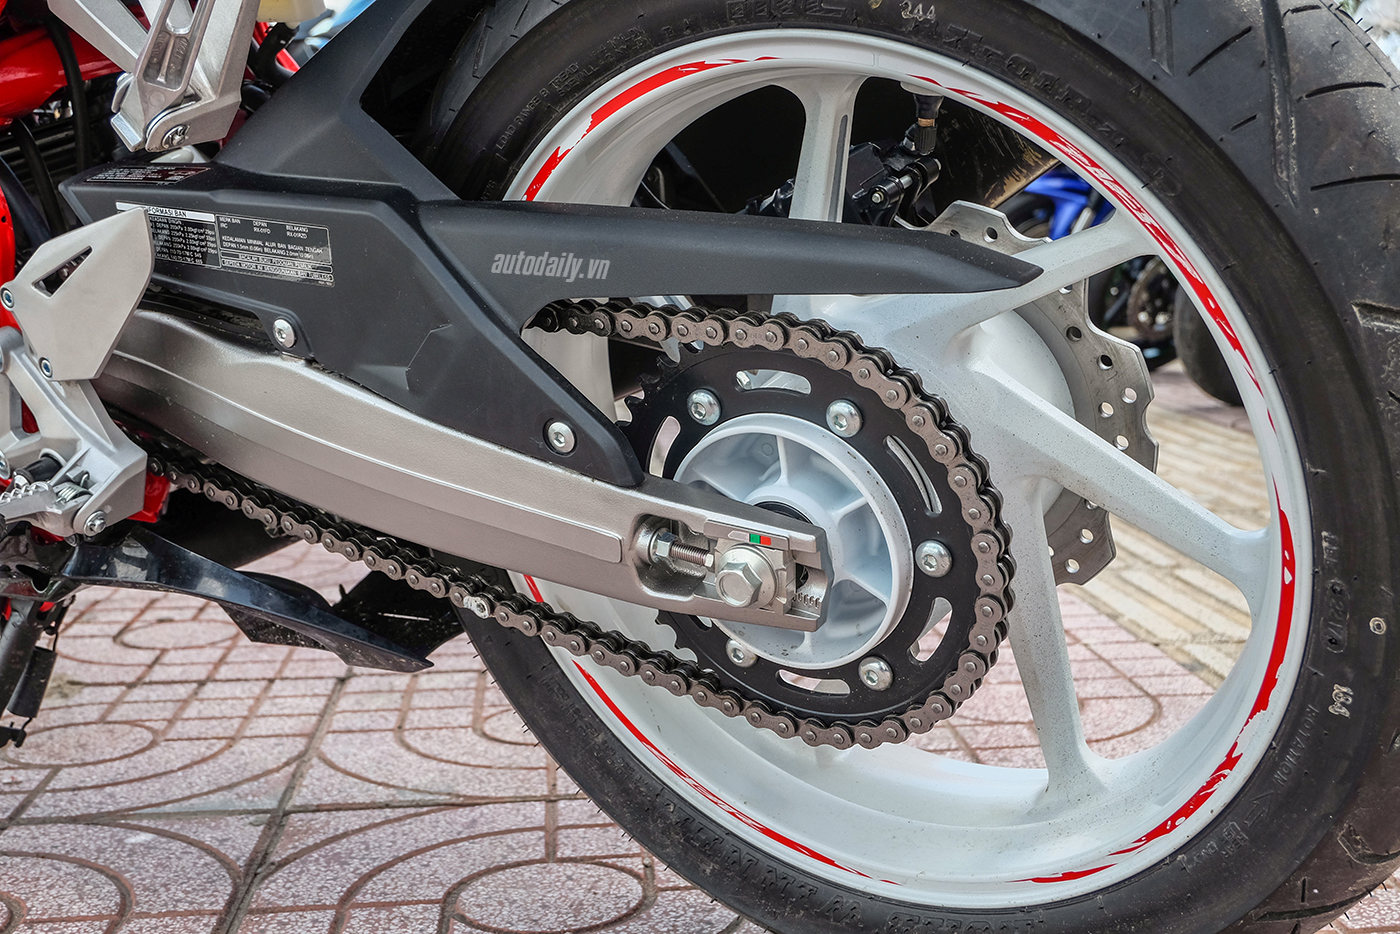 honda-cbr250rr-the-art-of-kabuki-2017-8.jpg